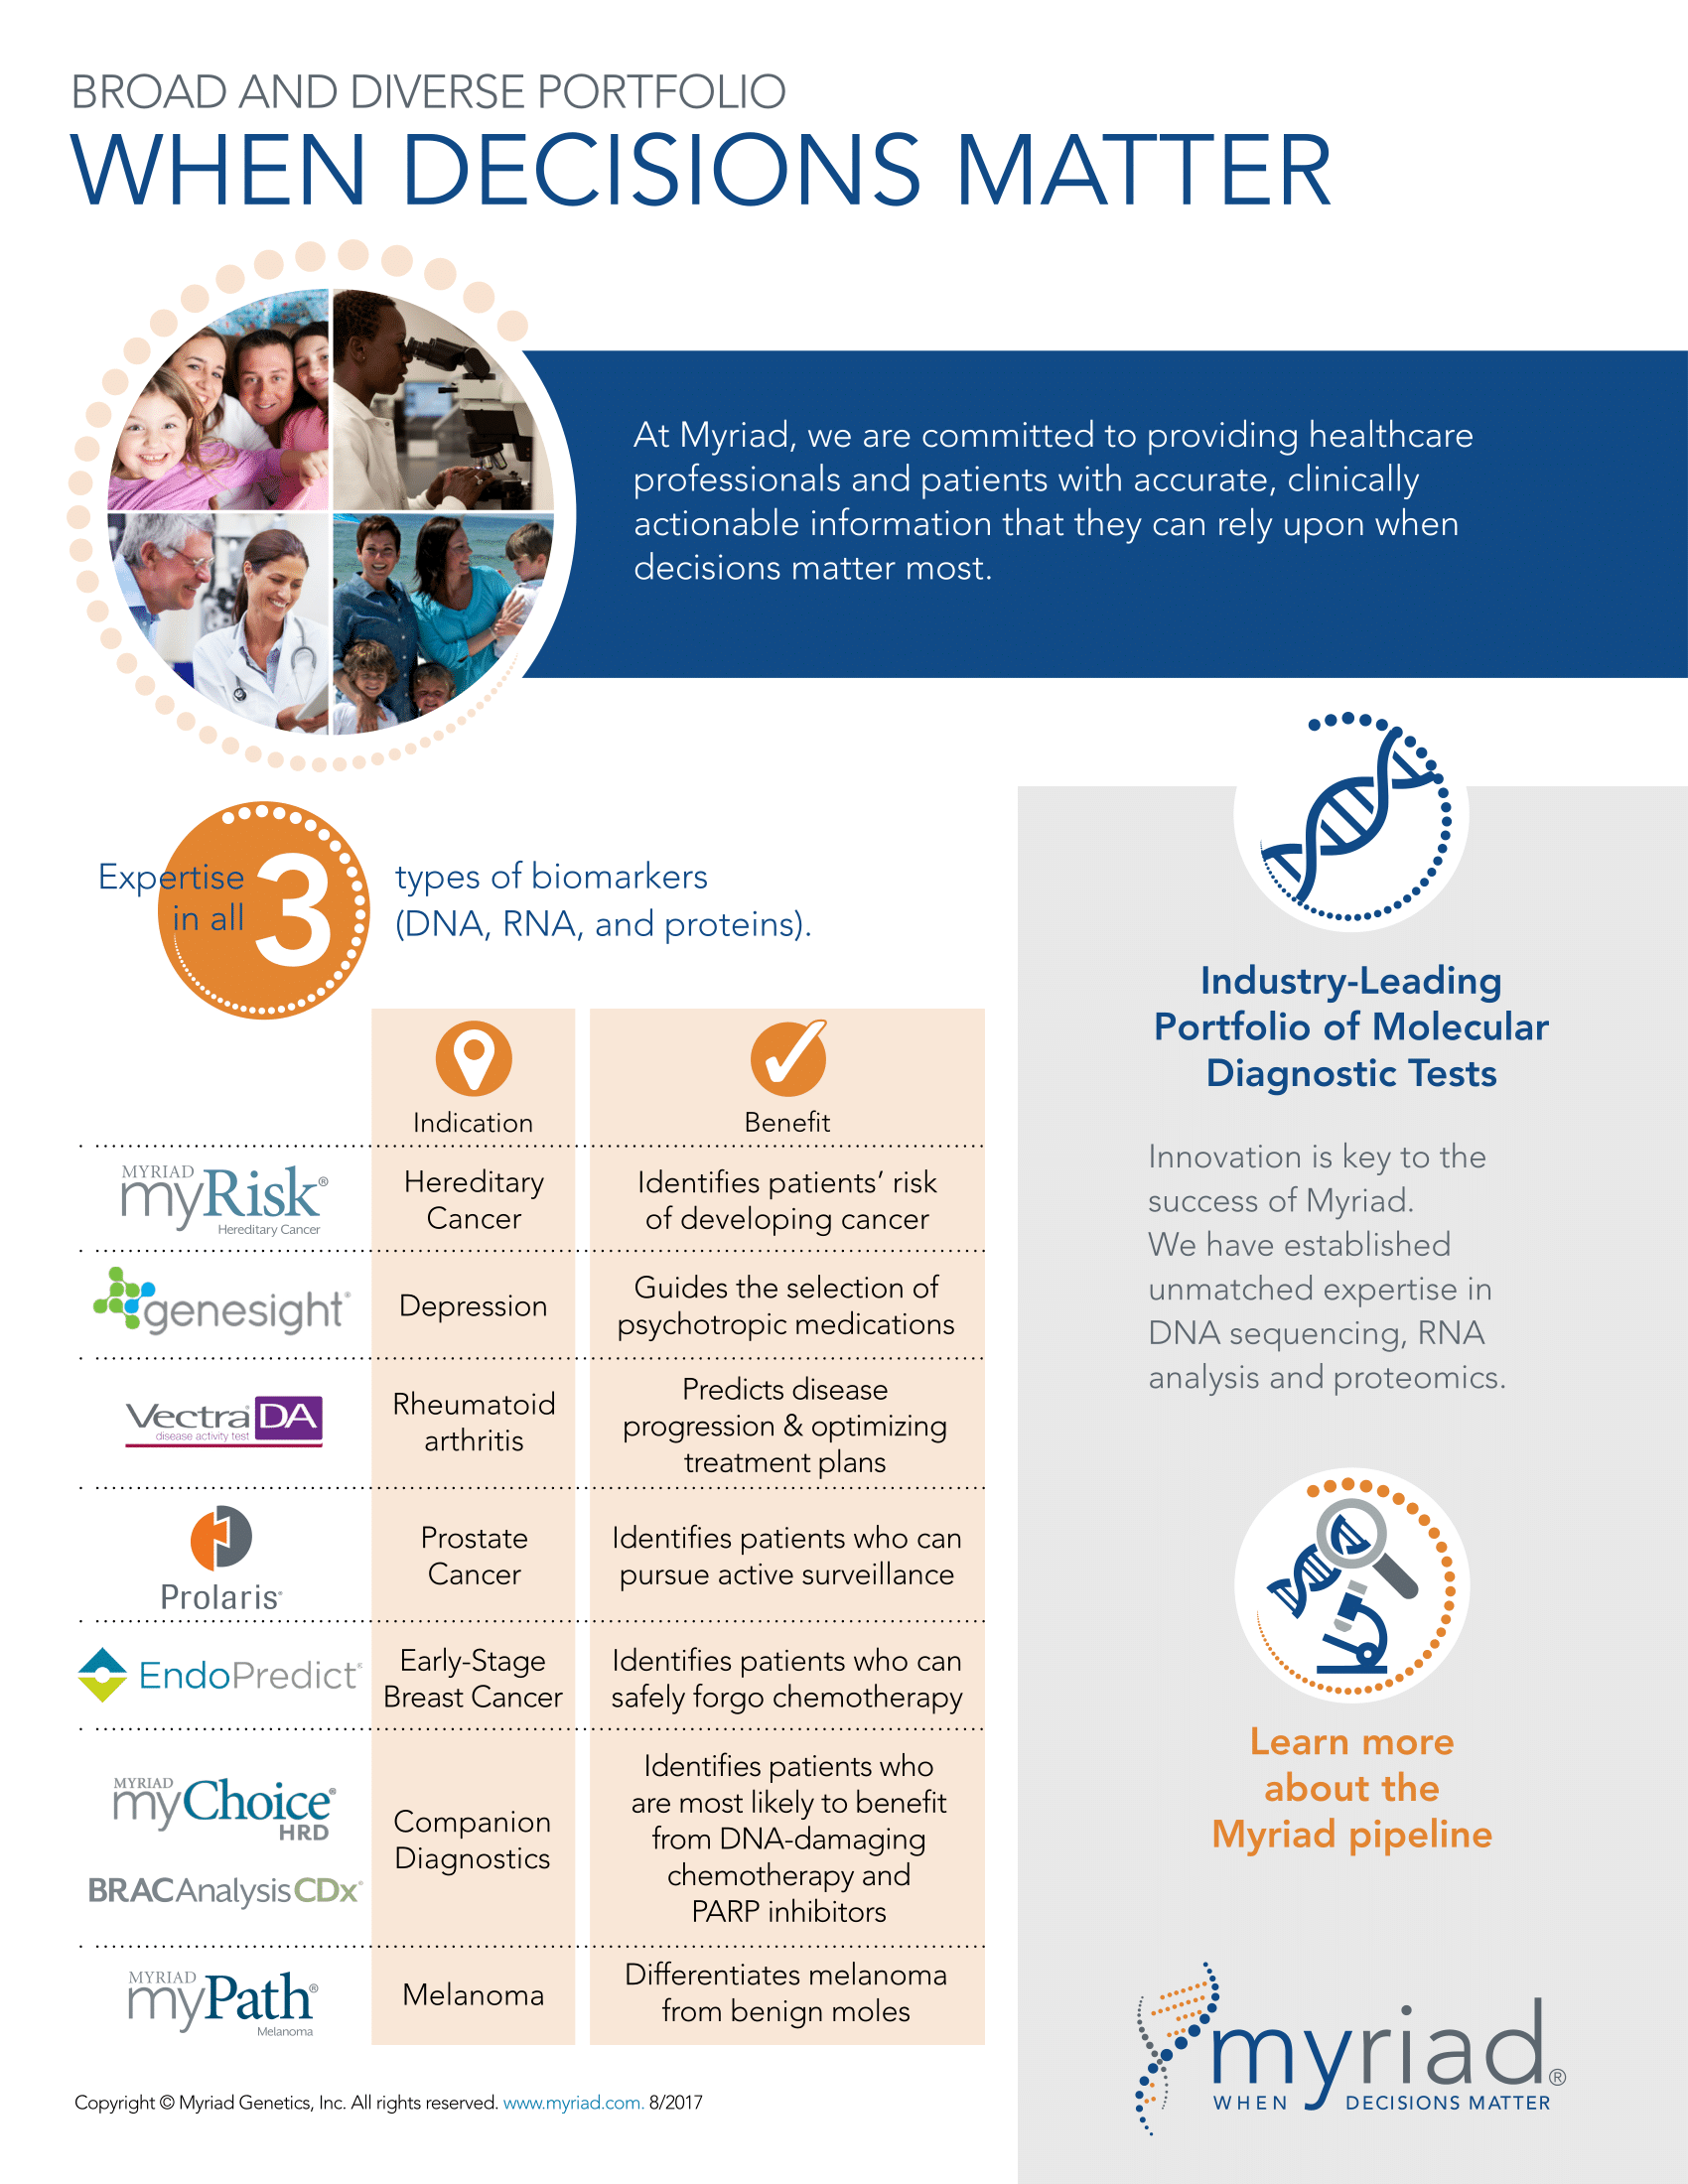 myriad genetics company fact sheet